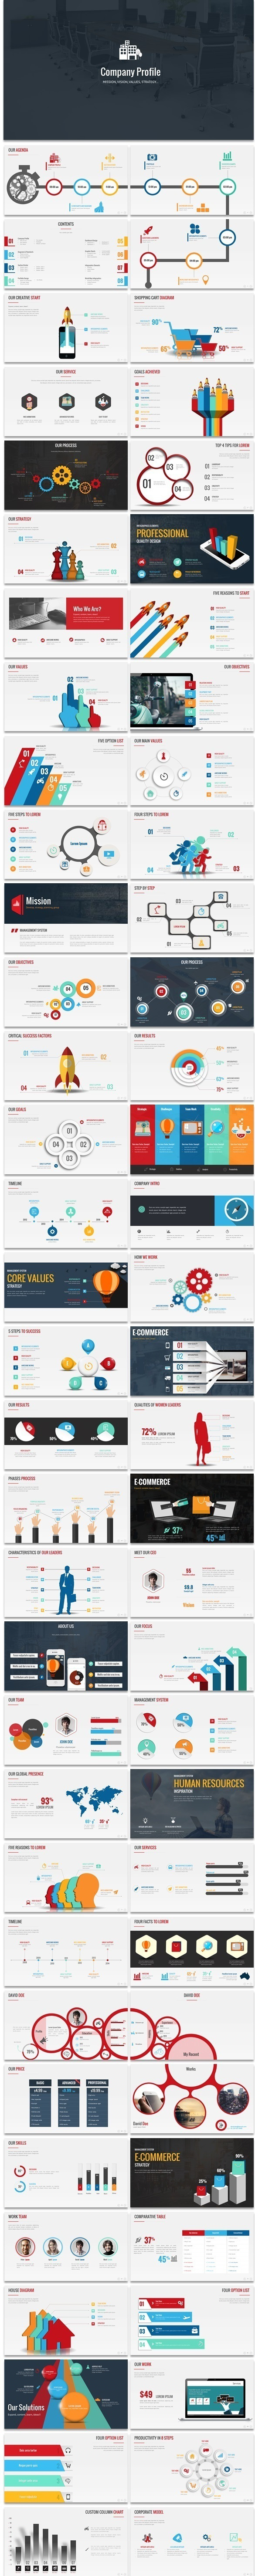 Cavale - Multipurpose Powerpoint Template